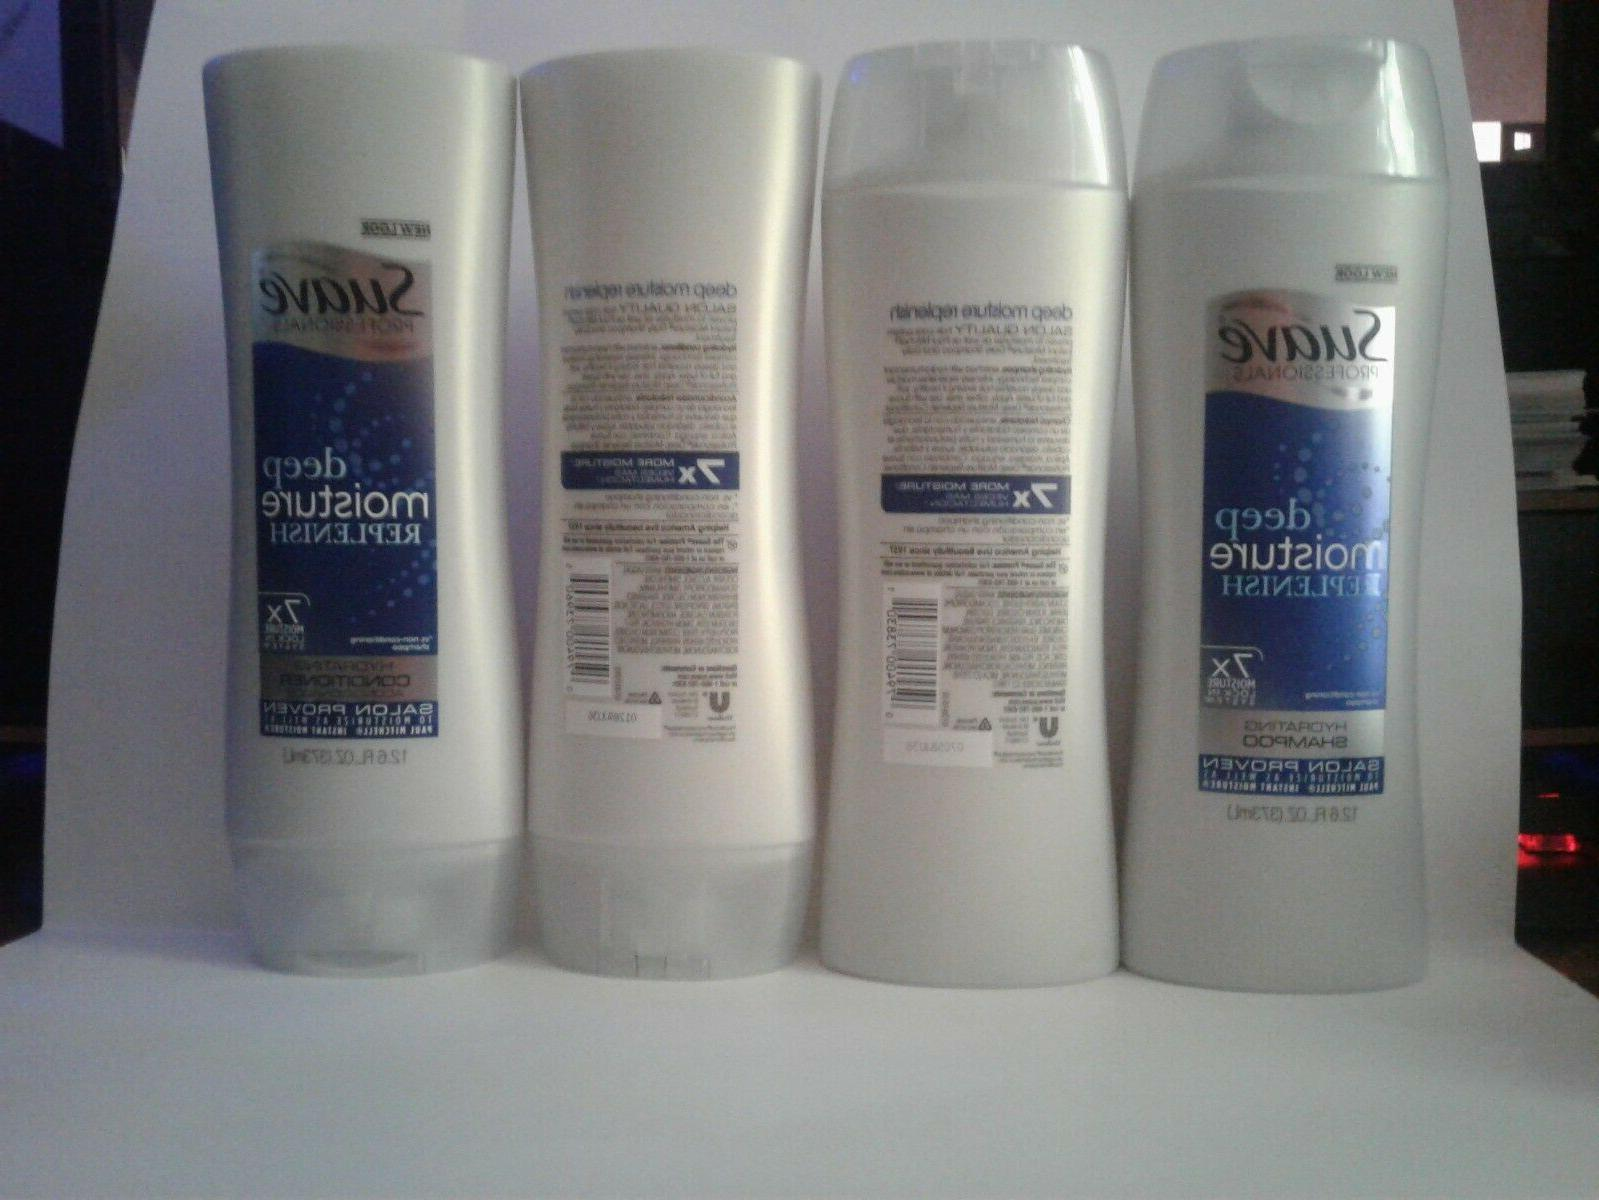 Suave Replenish 2 Conditioner 12.6 OZ Expired !